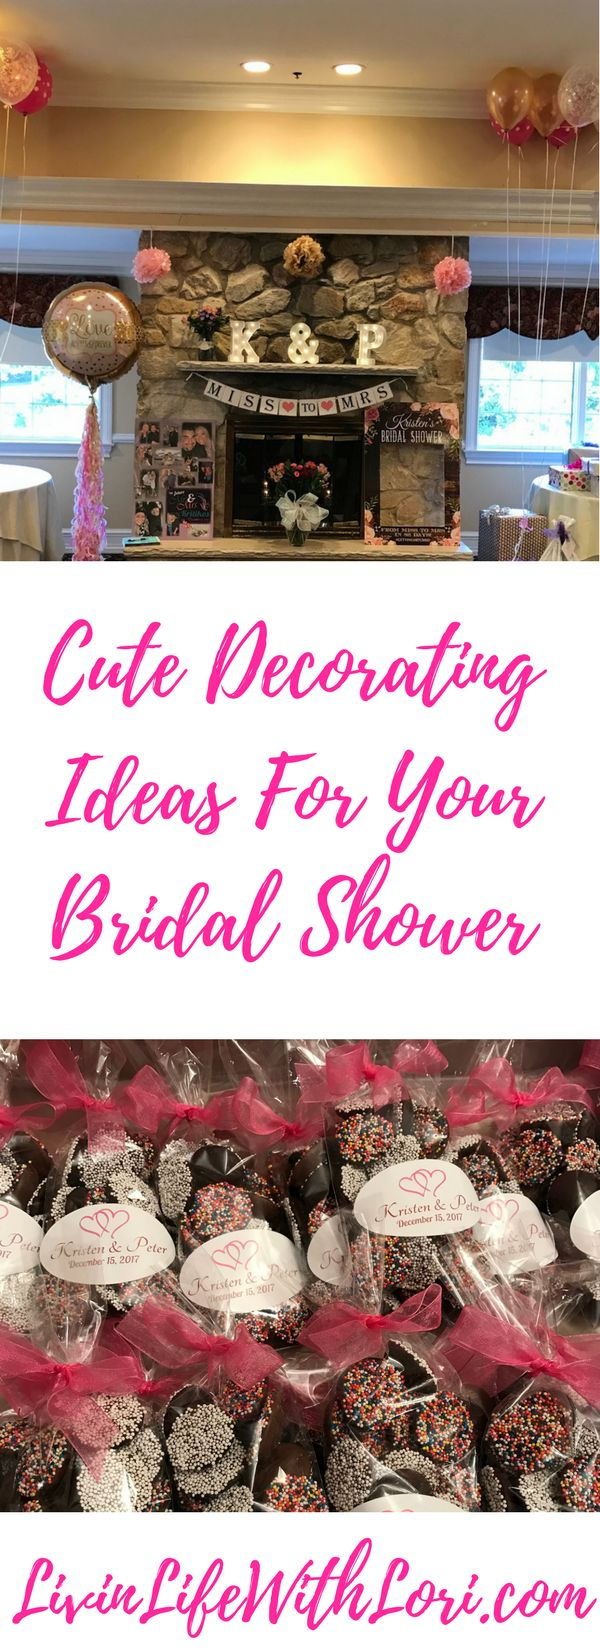 Planning A Bridal Shower? Try These Cute Decorating Ideas www.livinlifewithlori.com